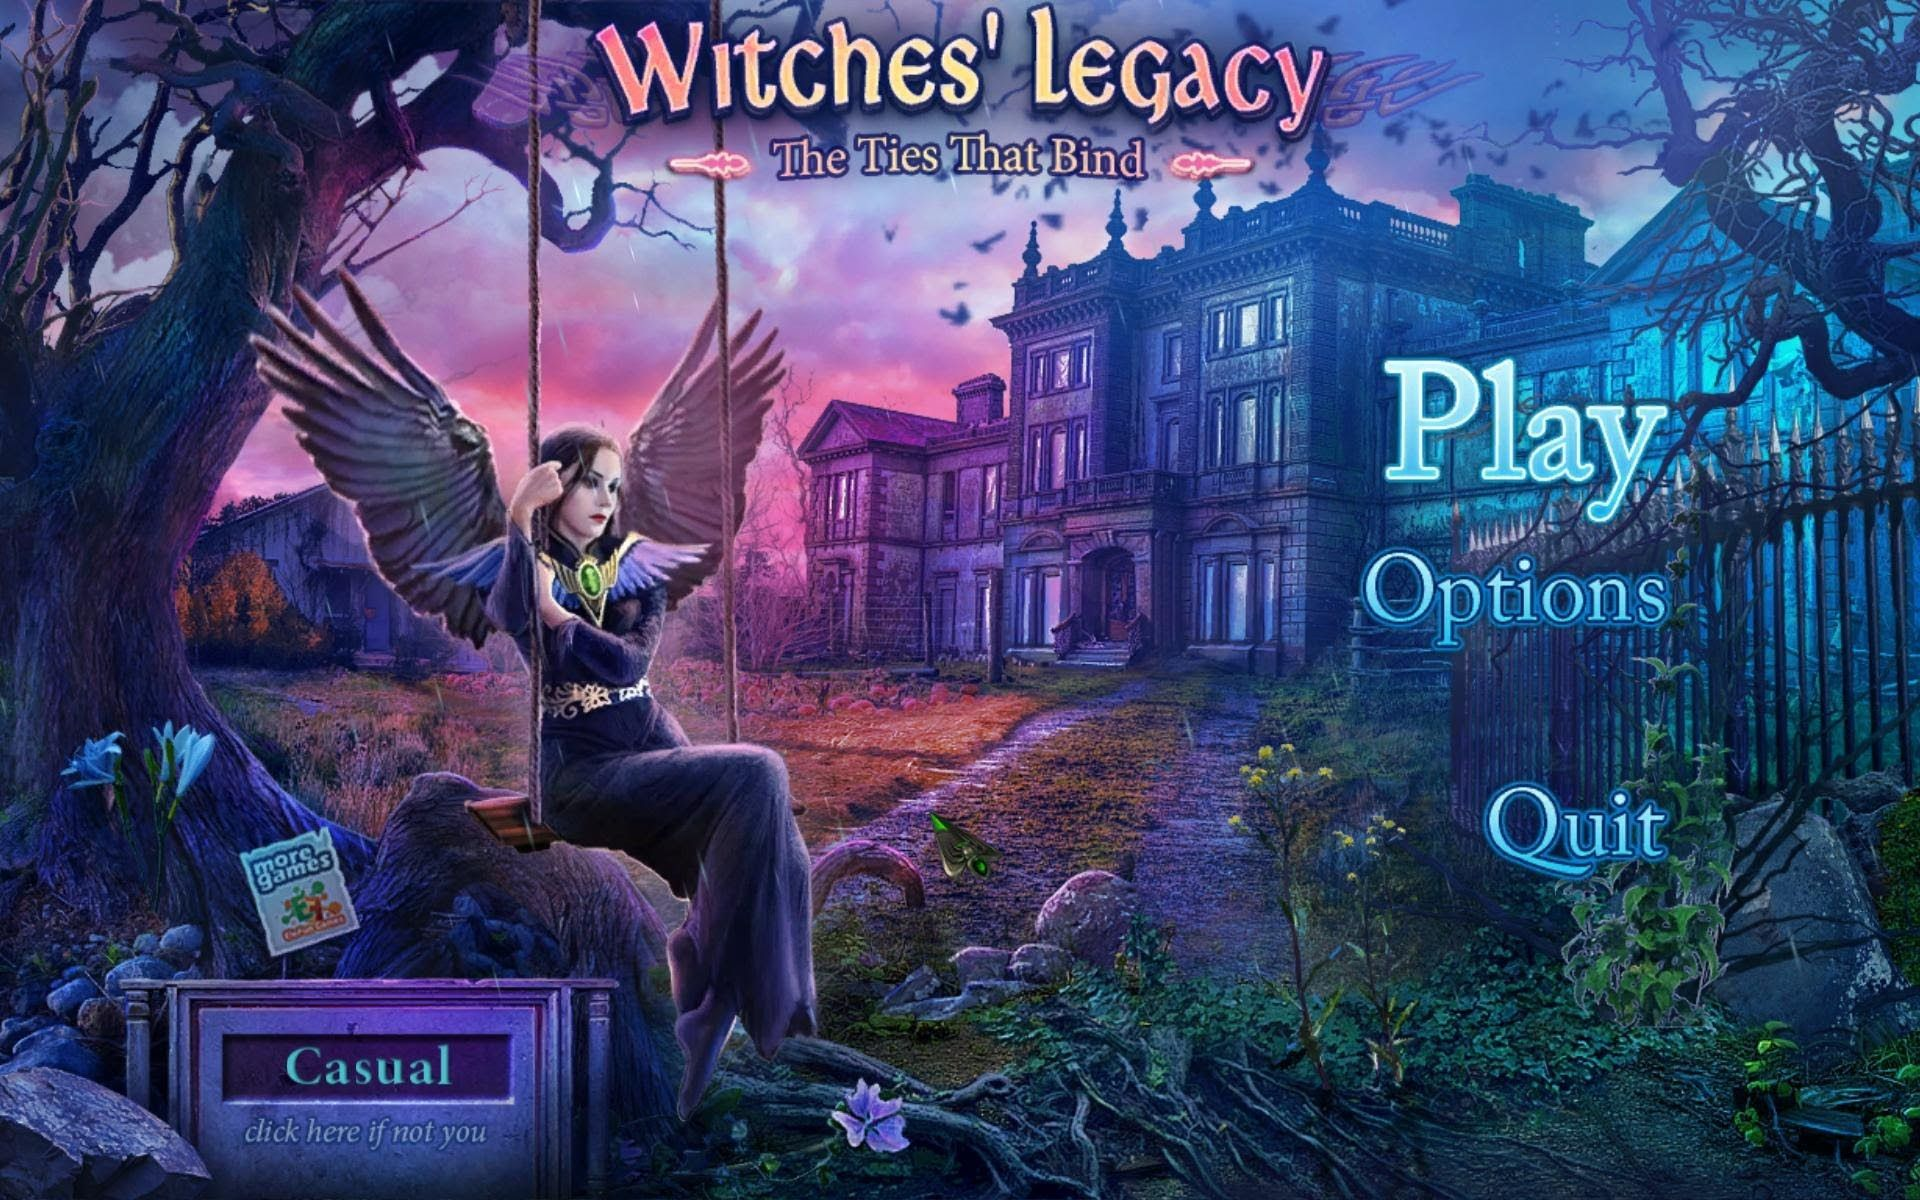 Download Http Wholovegames Com Hidden Object Witches Legacy The Ties That Bind Collectors Edition Html Witches Legacy 4 The Ties That Vedma Kartinki Igry